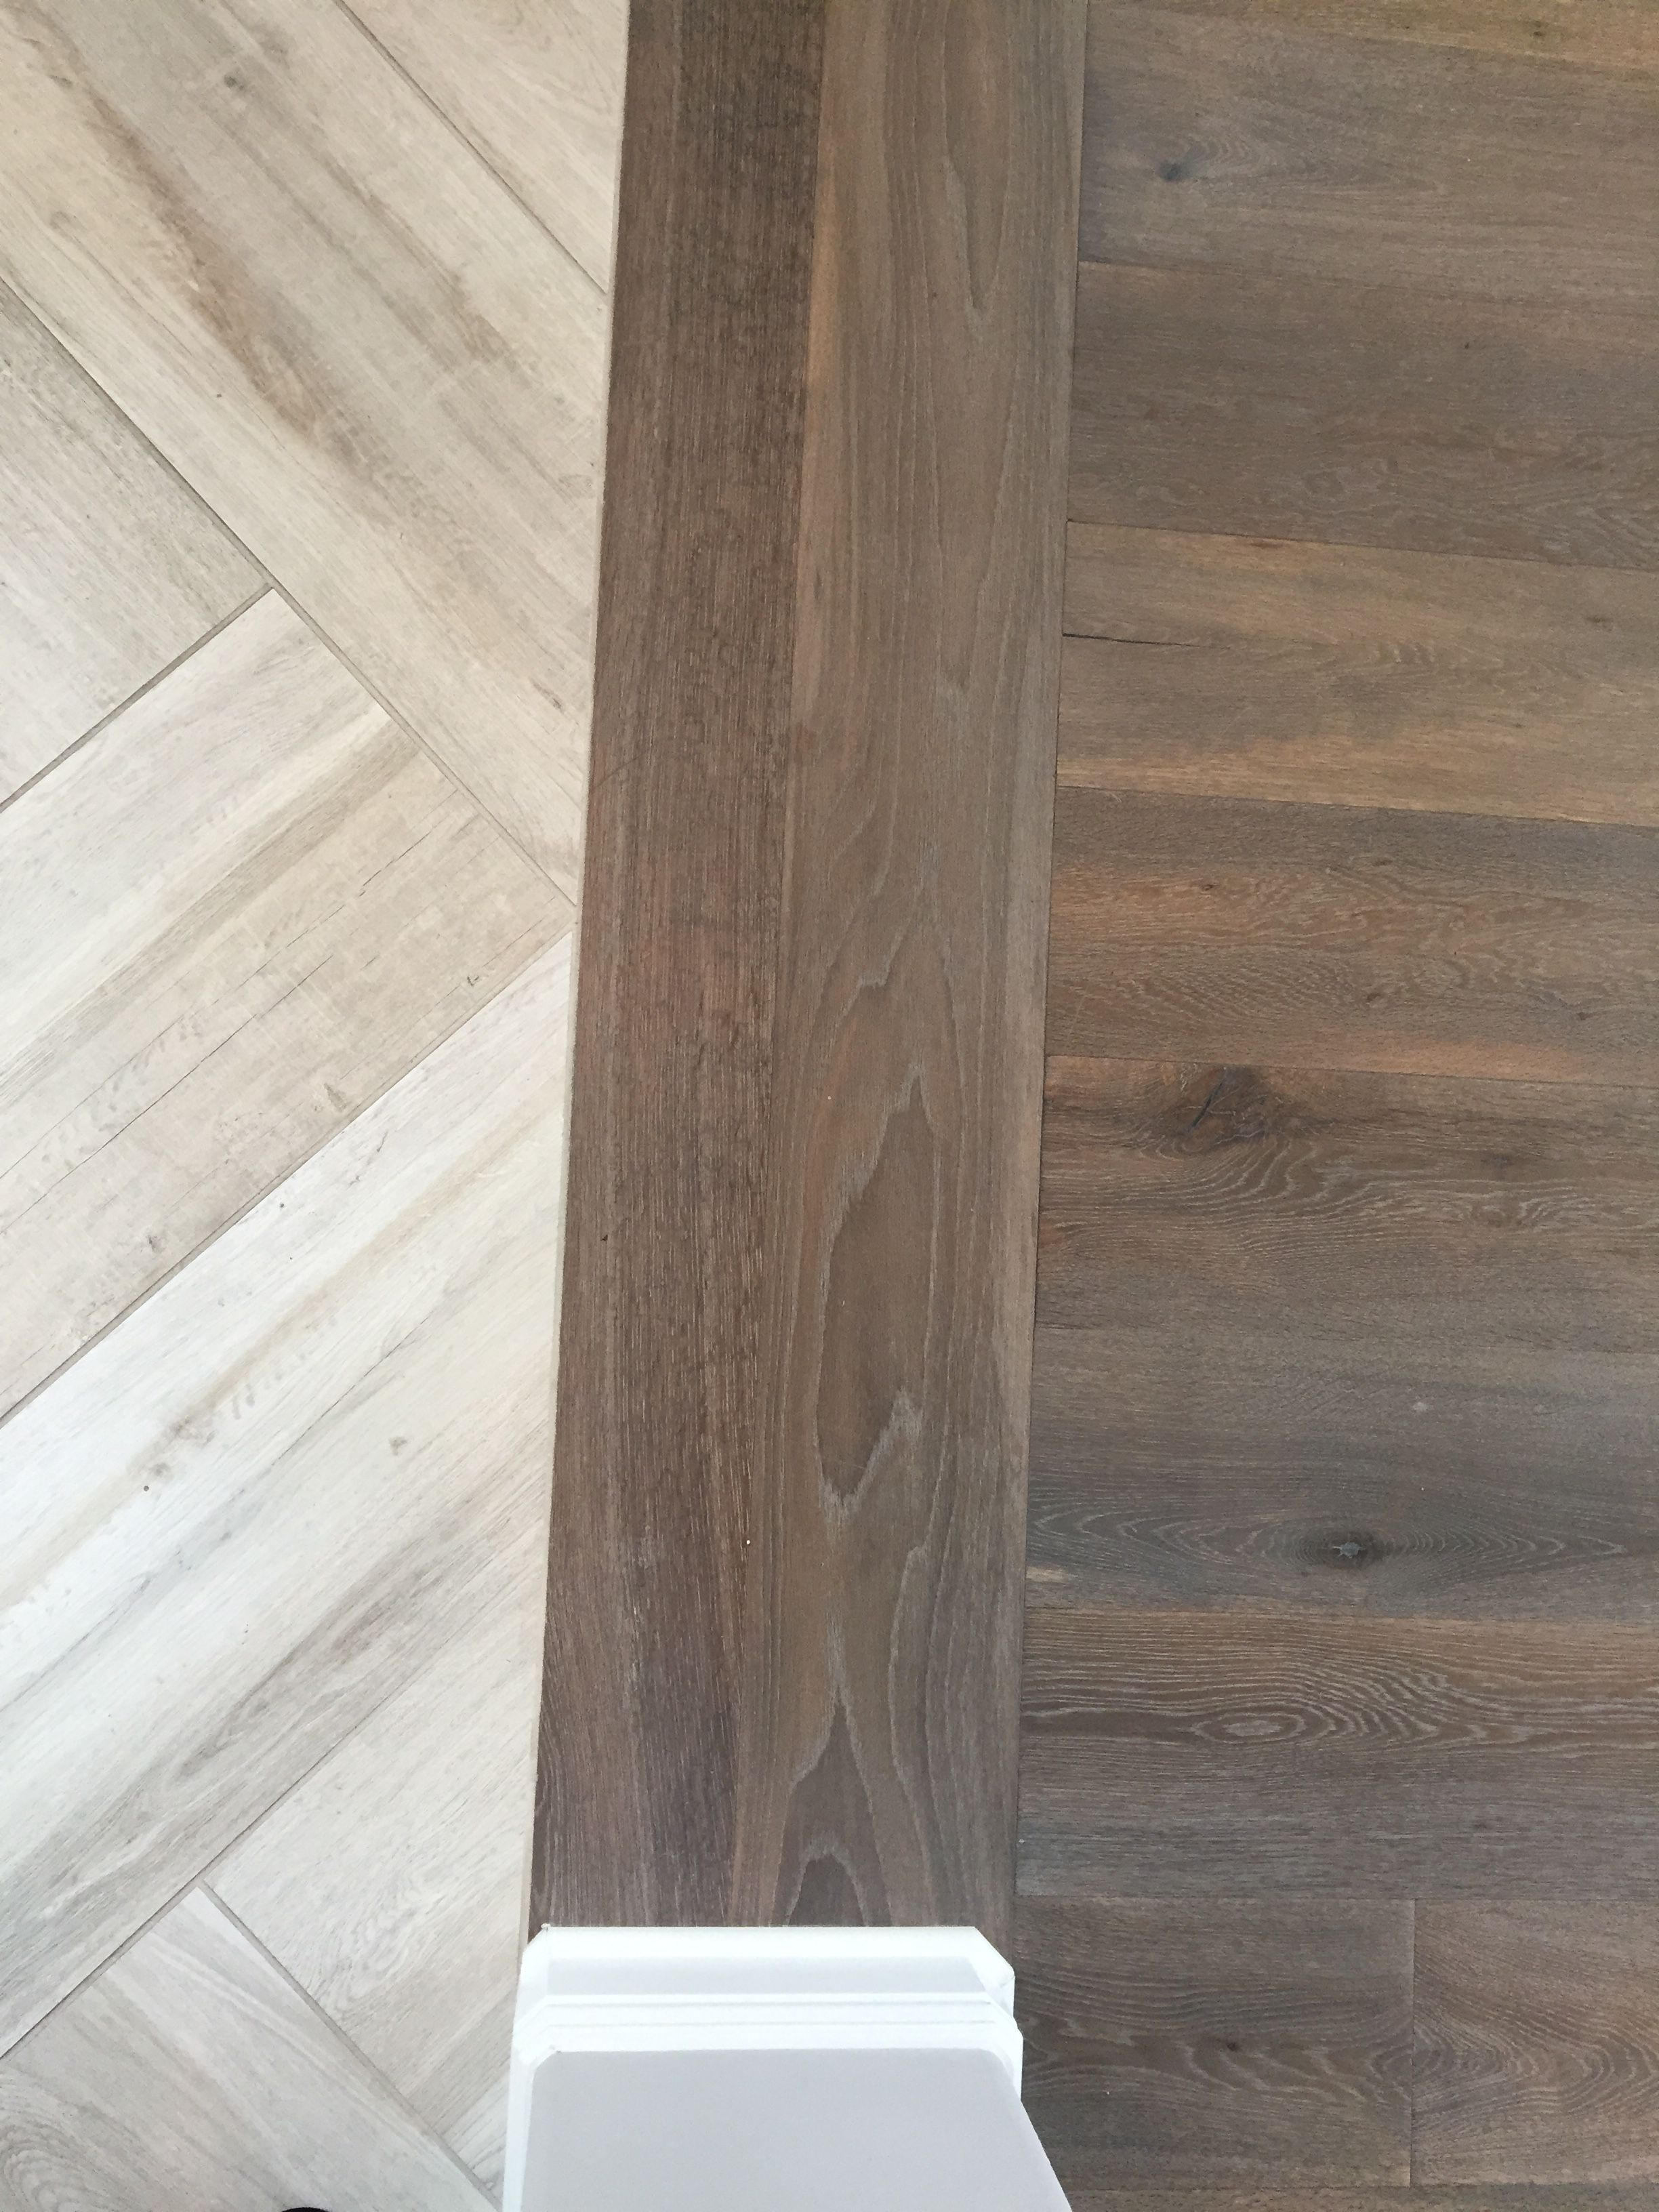 Floor transition laminate to herringbone tile pattern for Hardwood floor plans